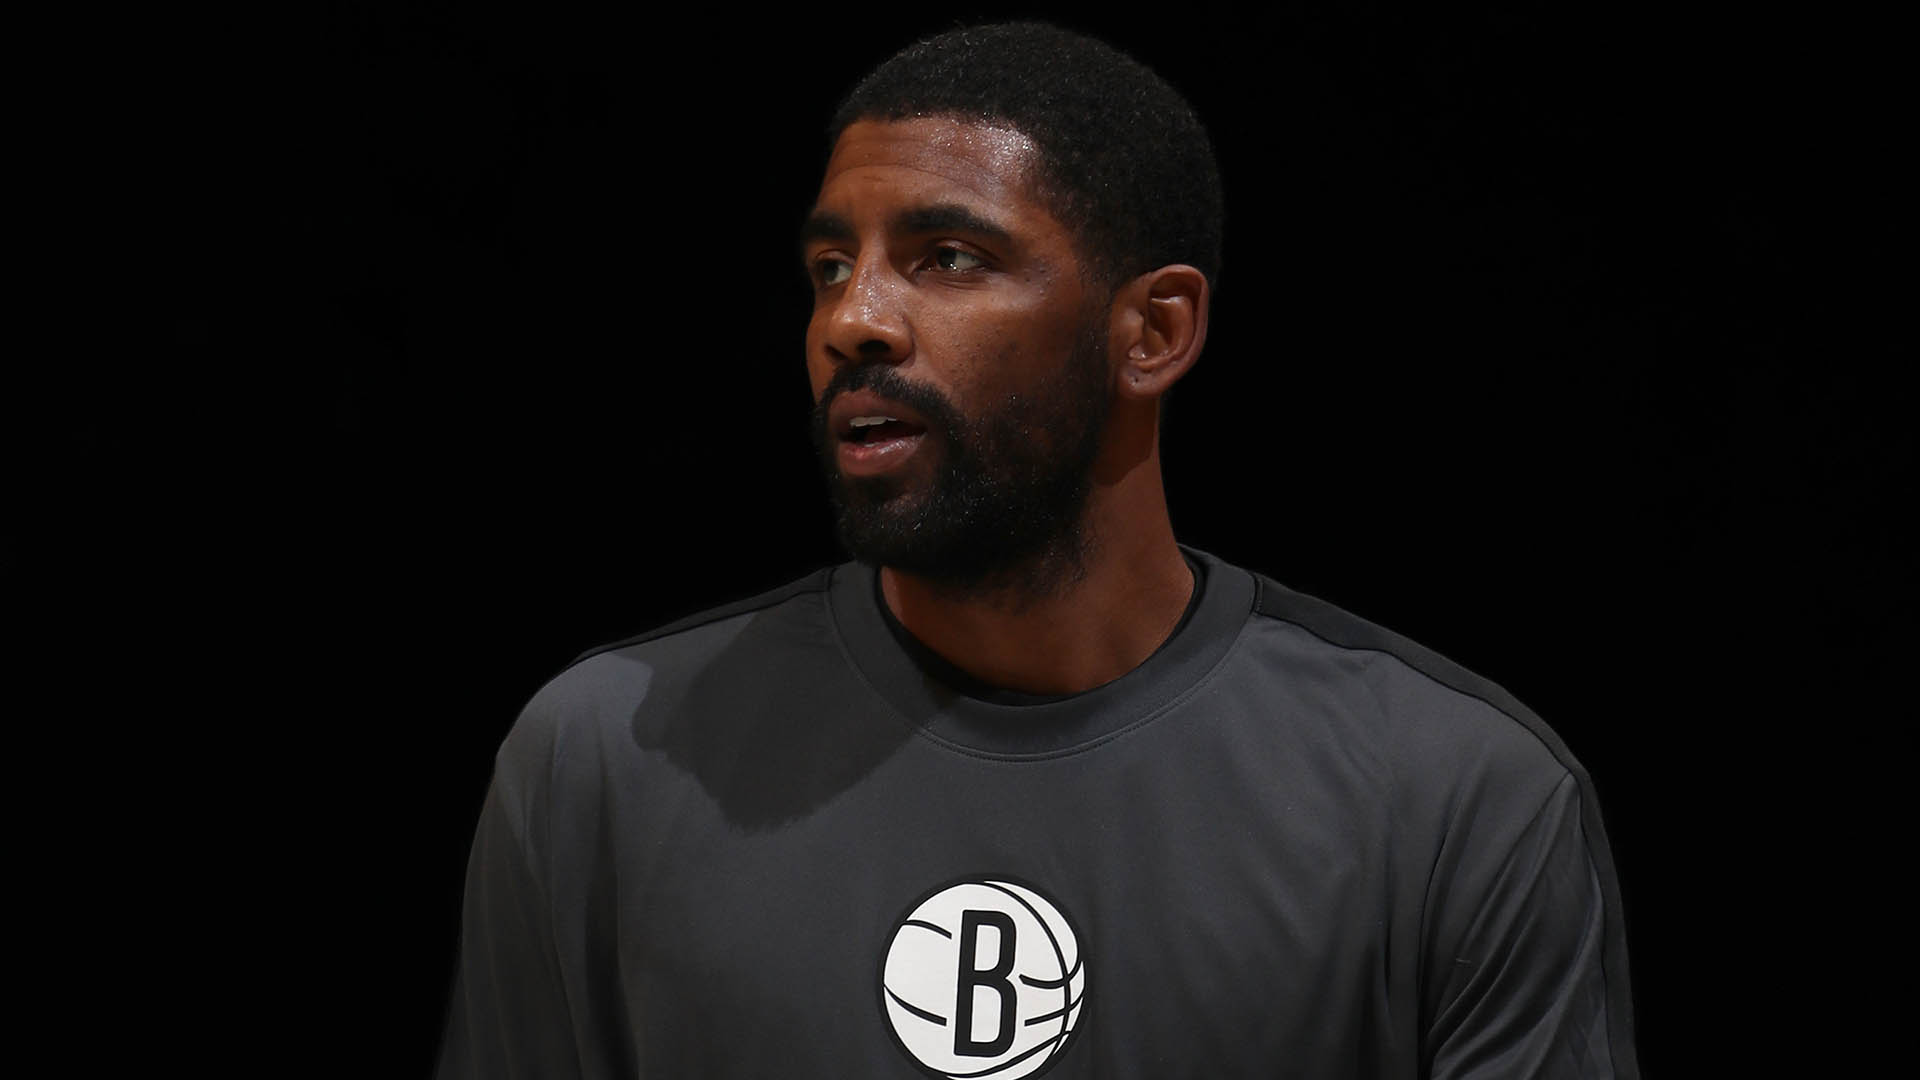 Kyrie Irving (health and safety protocols) won't play vs. Bucks